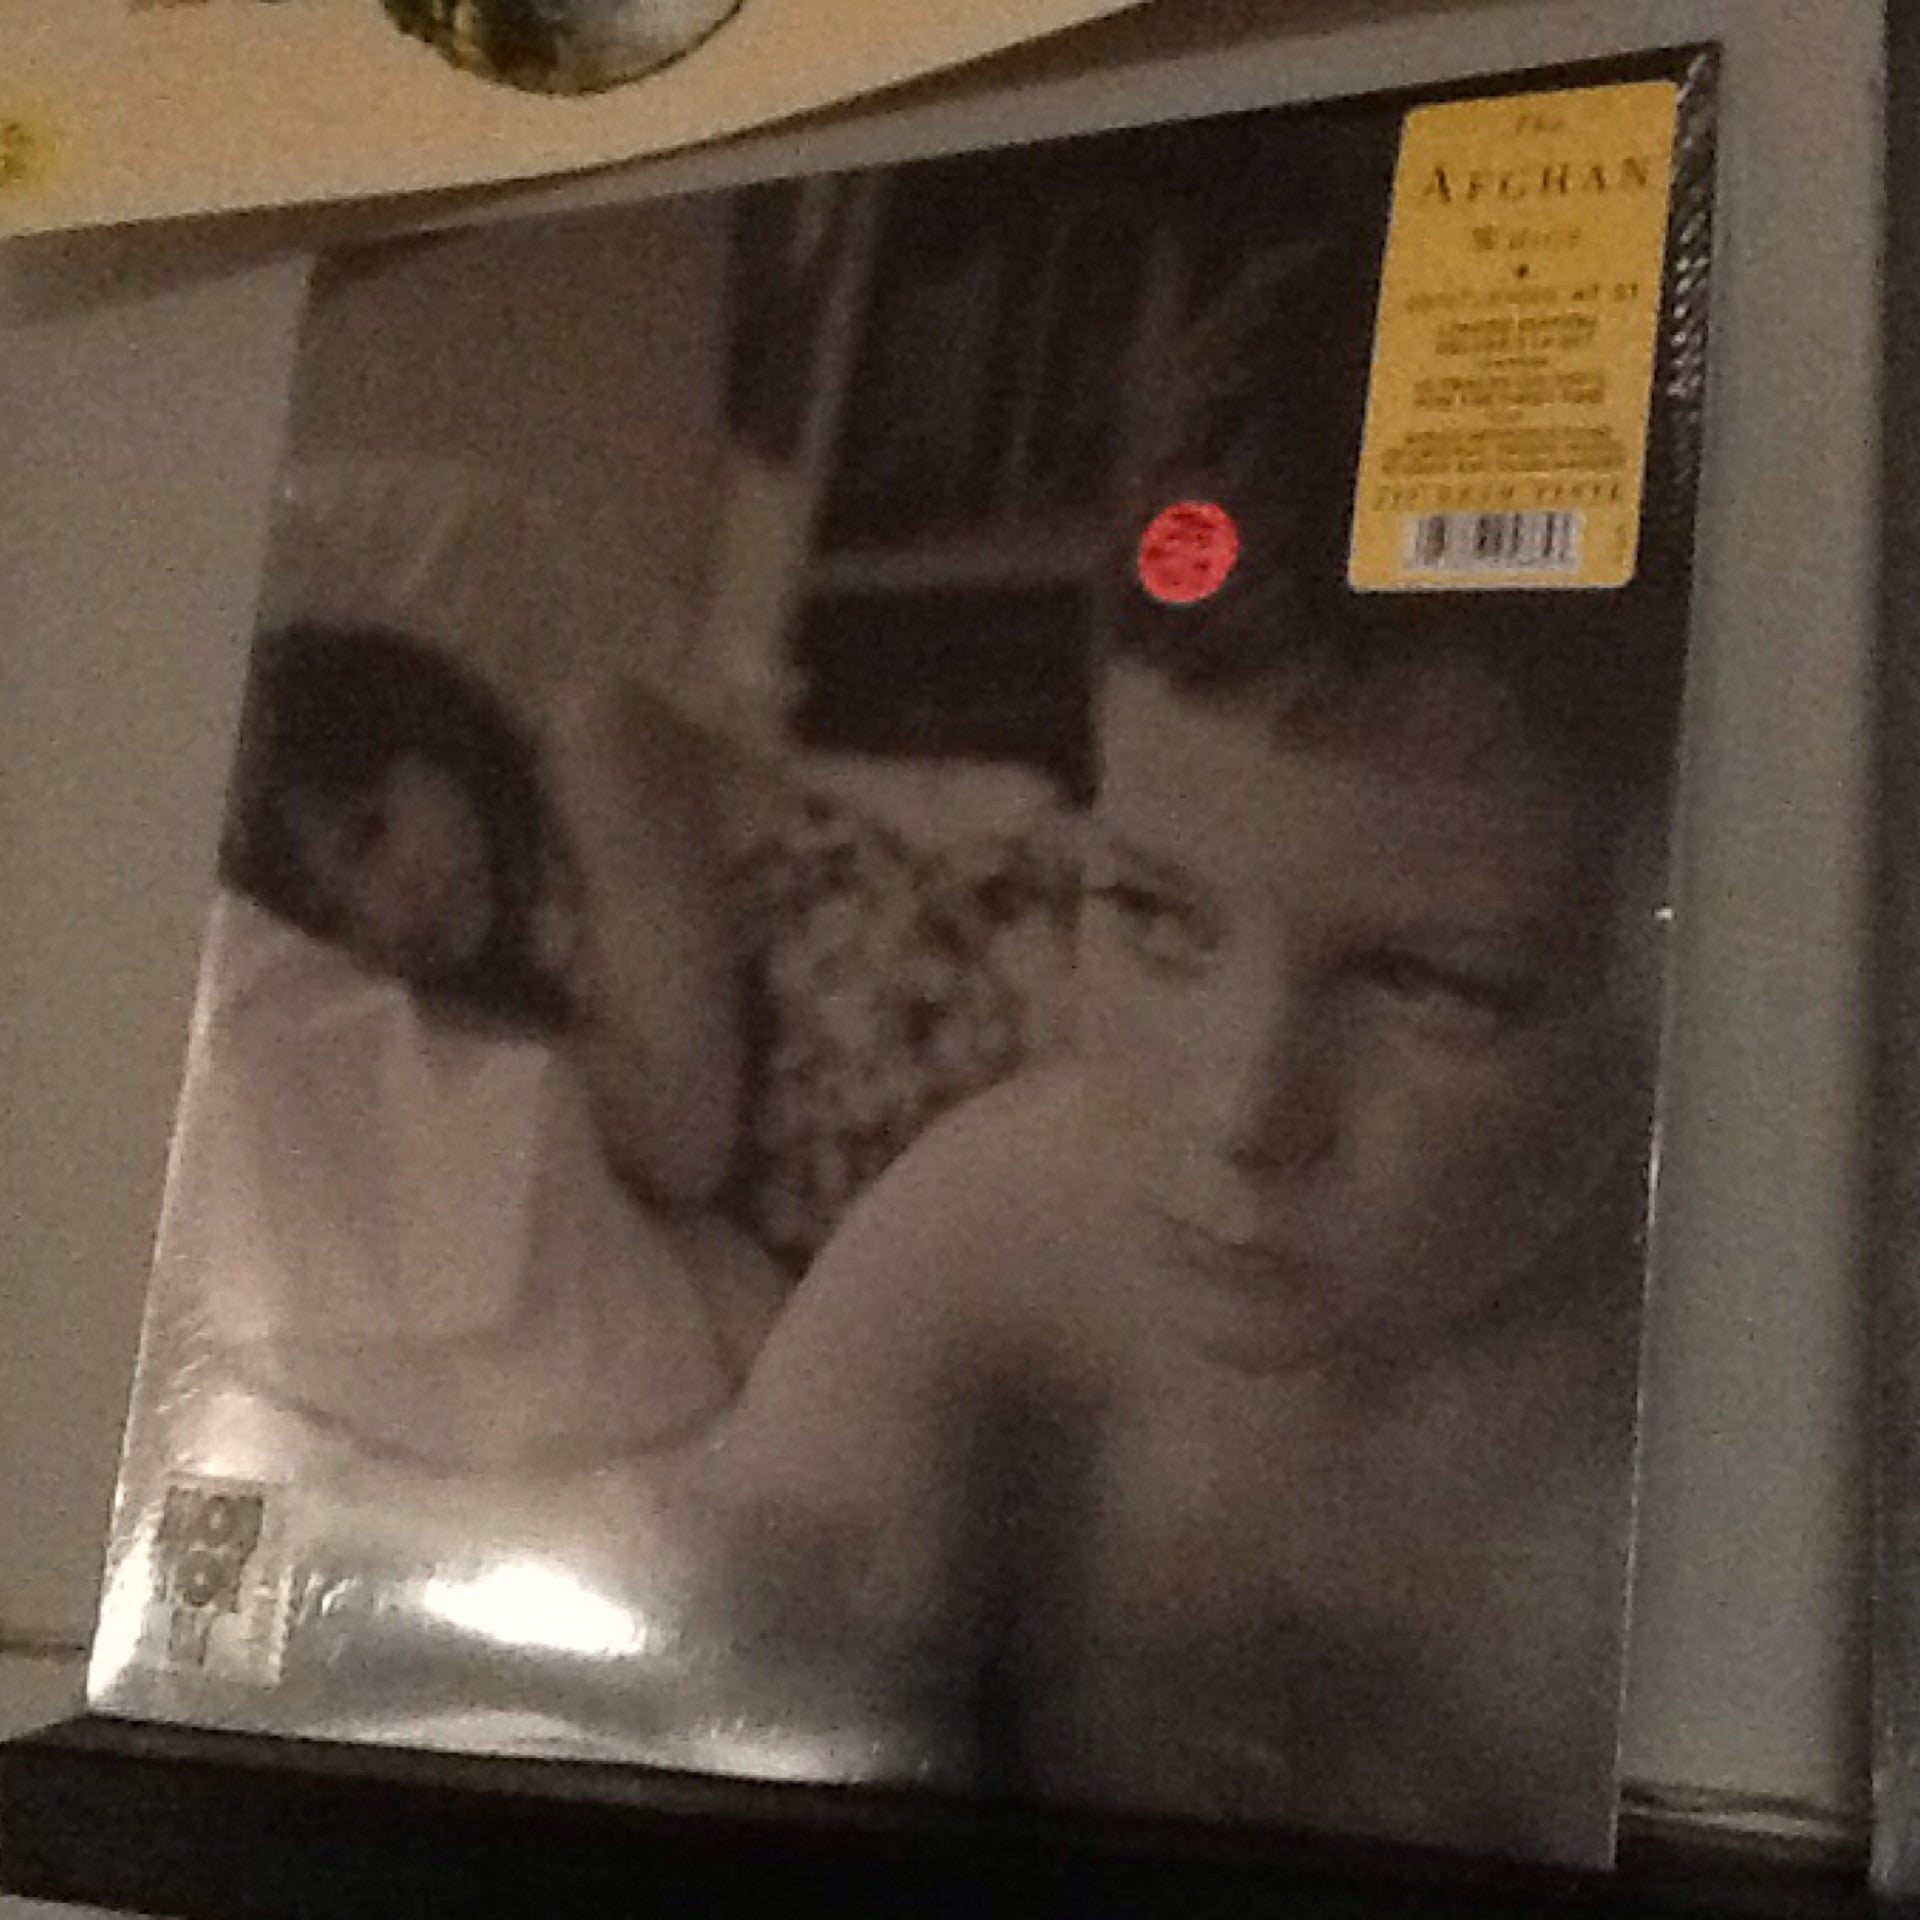 Afghan Whigs - Gentlemen At 21 LP - Limited Edition